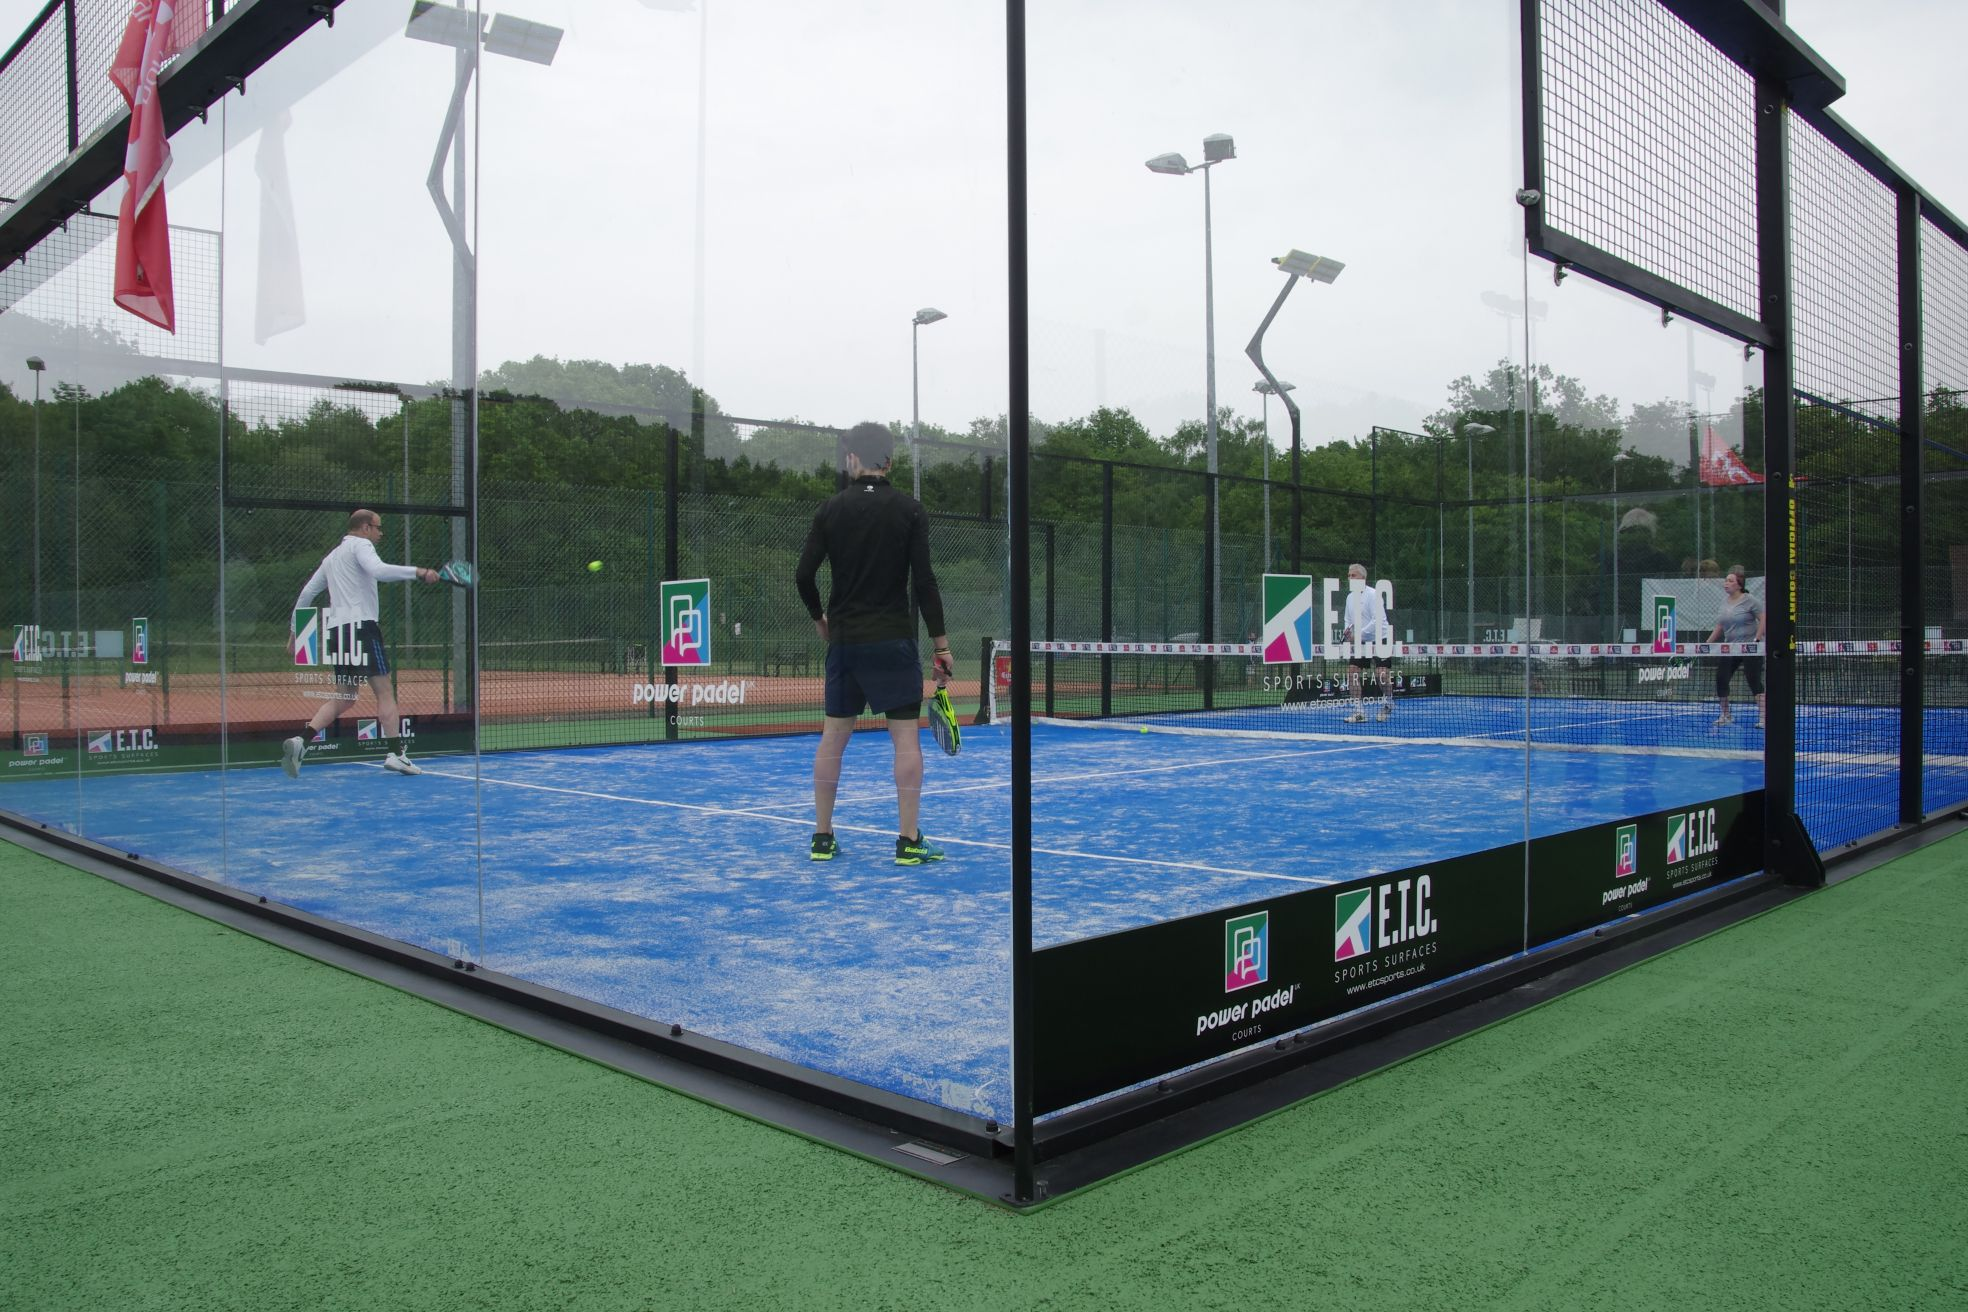 In partnership with Pista Padel, Padel court construction is exclusively available in the UK from main contractors, ETC Sports Surfaces.